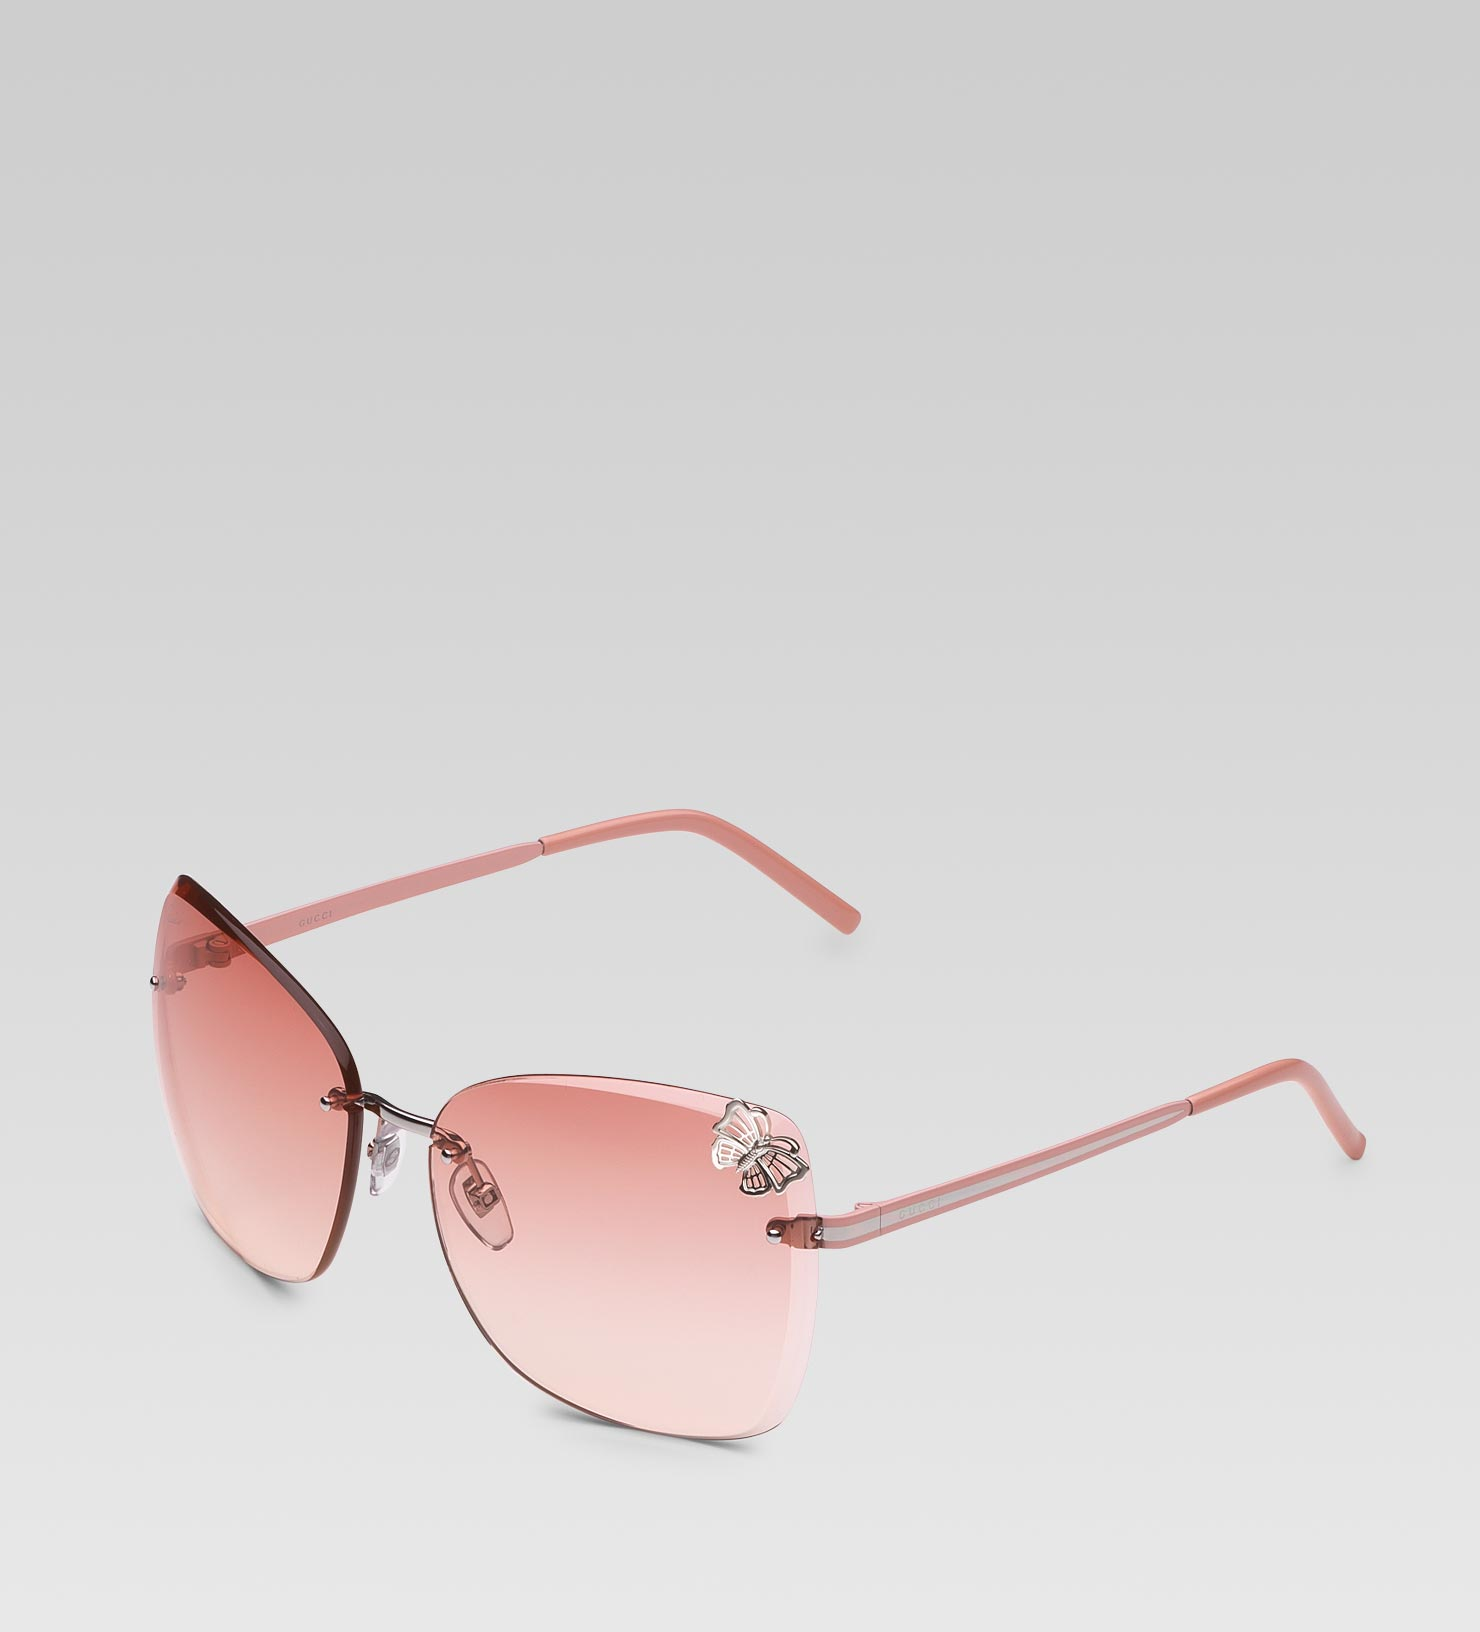 Gucci Sunglasses With Logo On Lens  gucci medium erfly frame sunglasses with small filigree